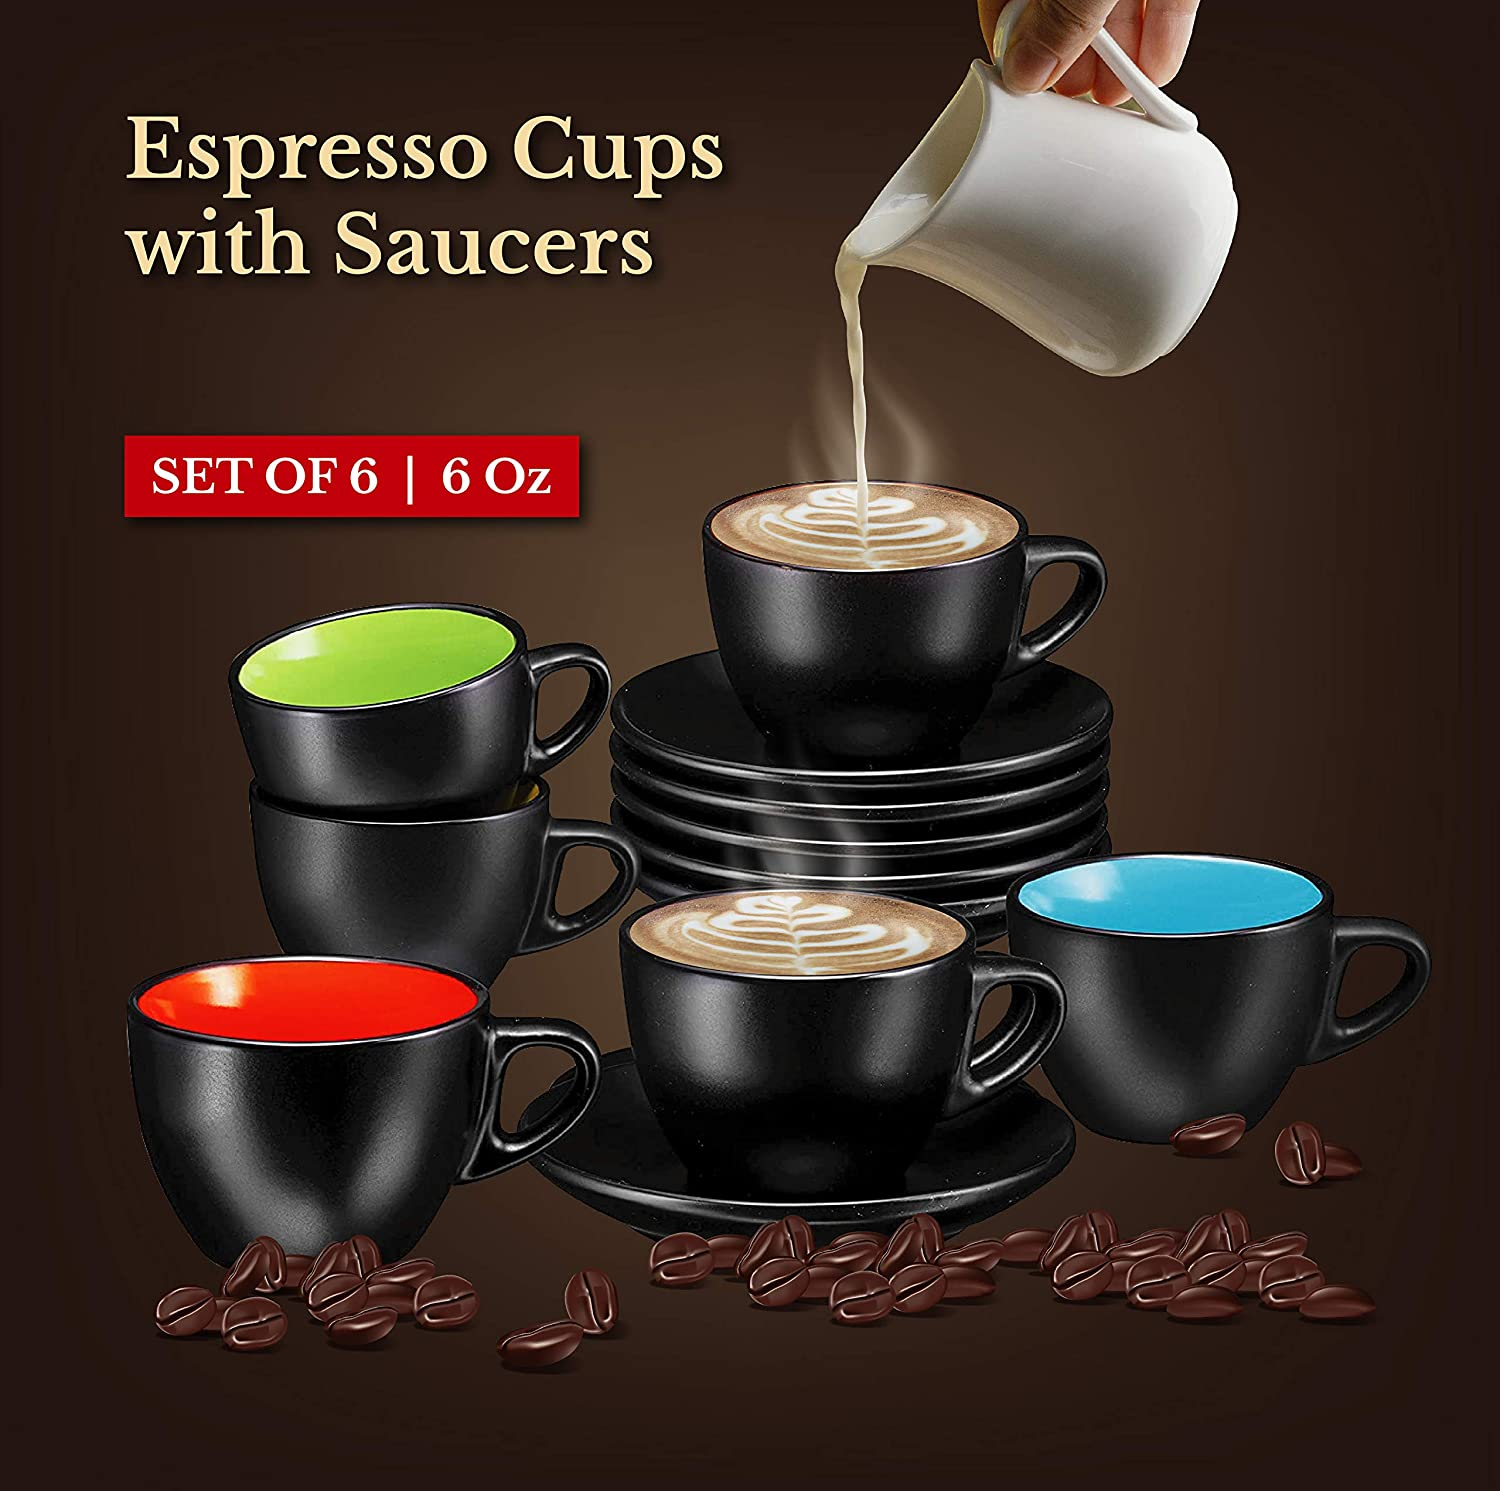 Espresso Cups with Saucers by Bruntmor - 6 ounce - Set of 6, Matte Black